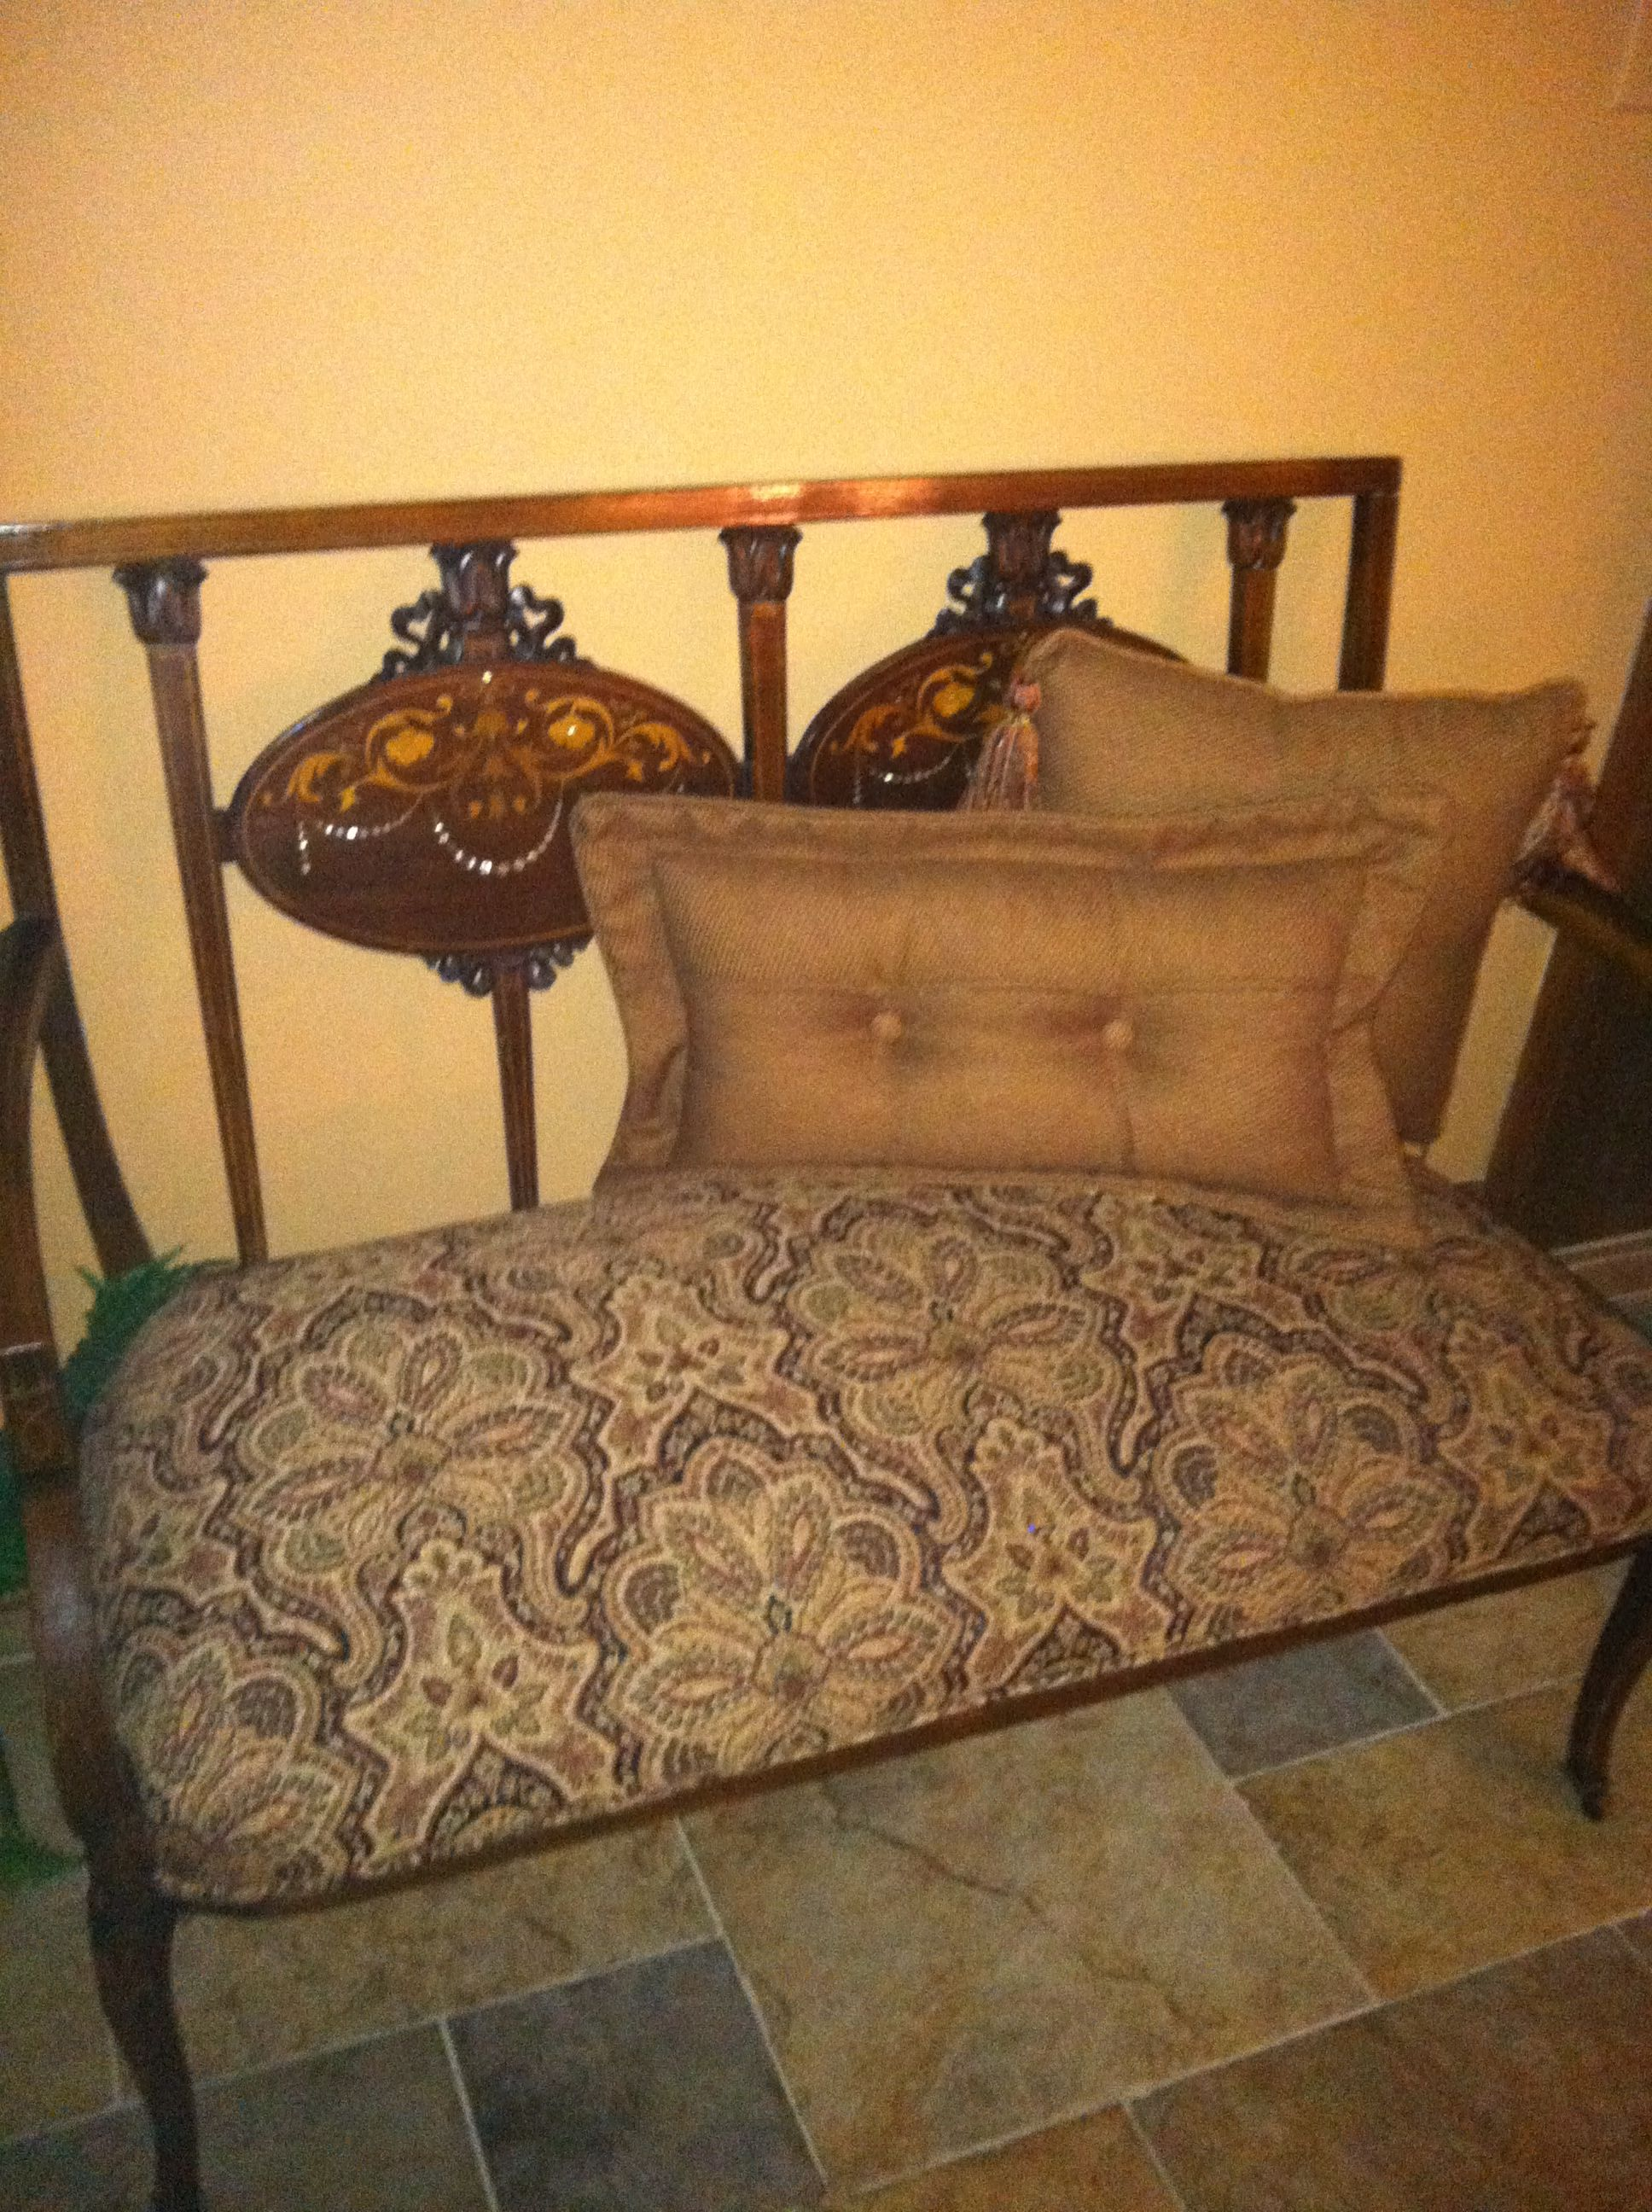 Lovely antique settee